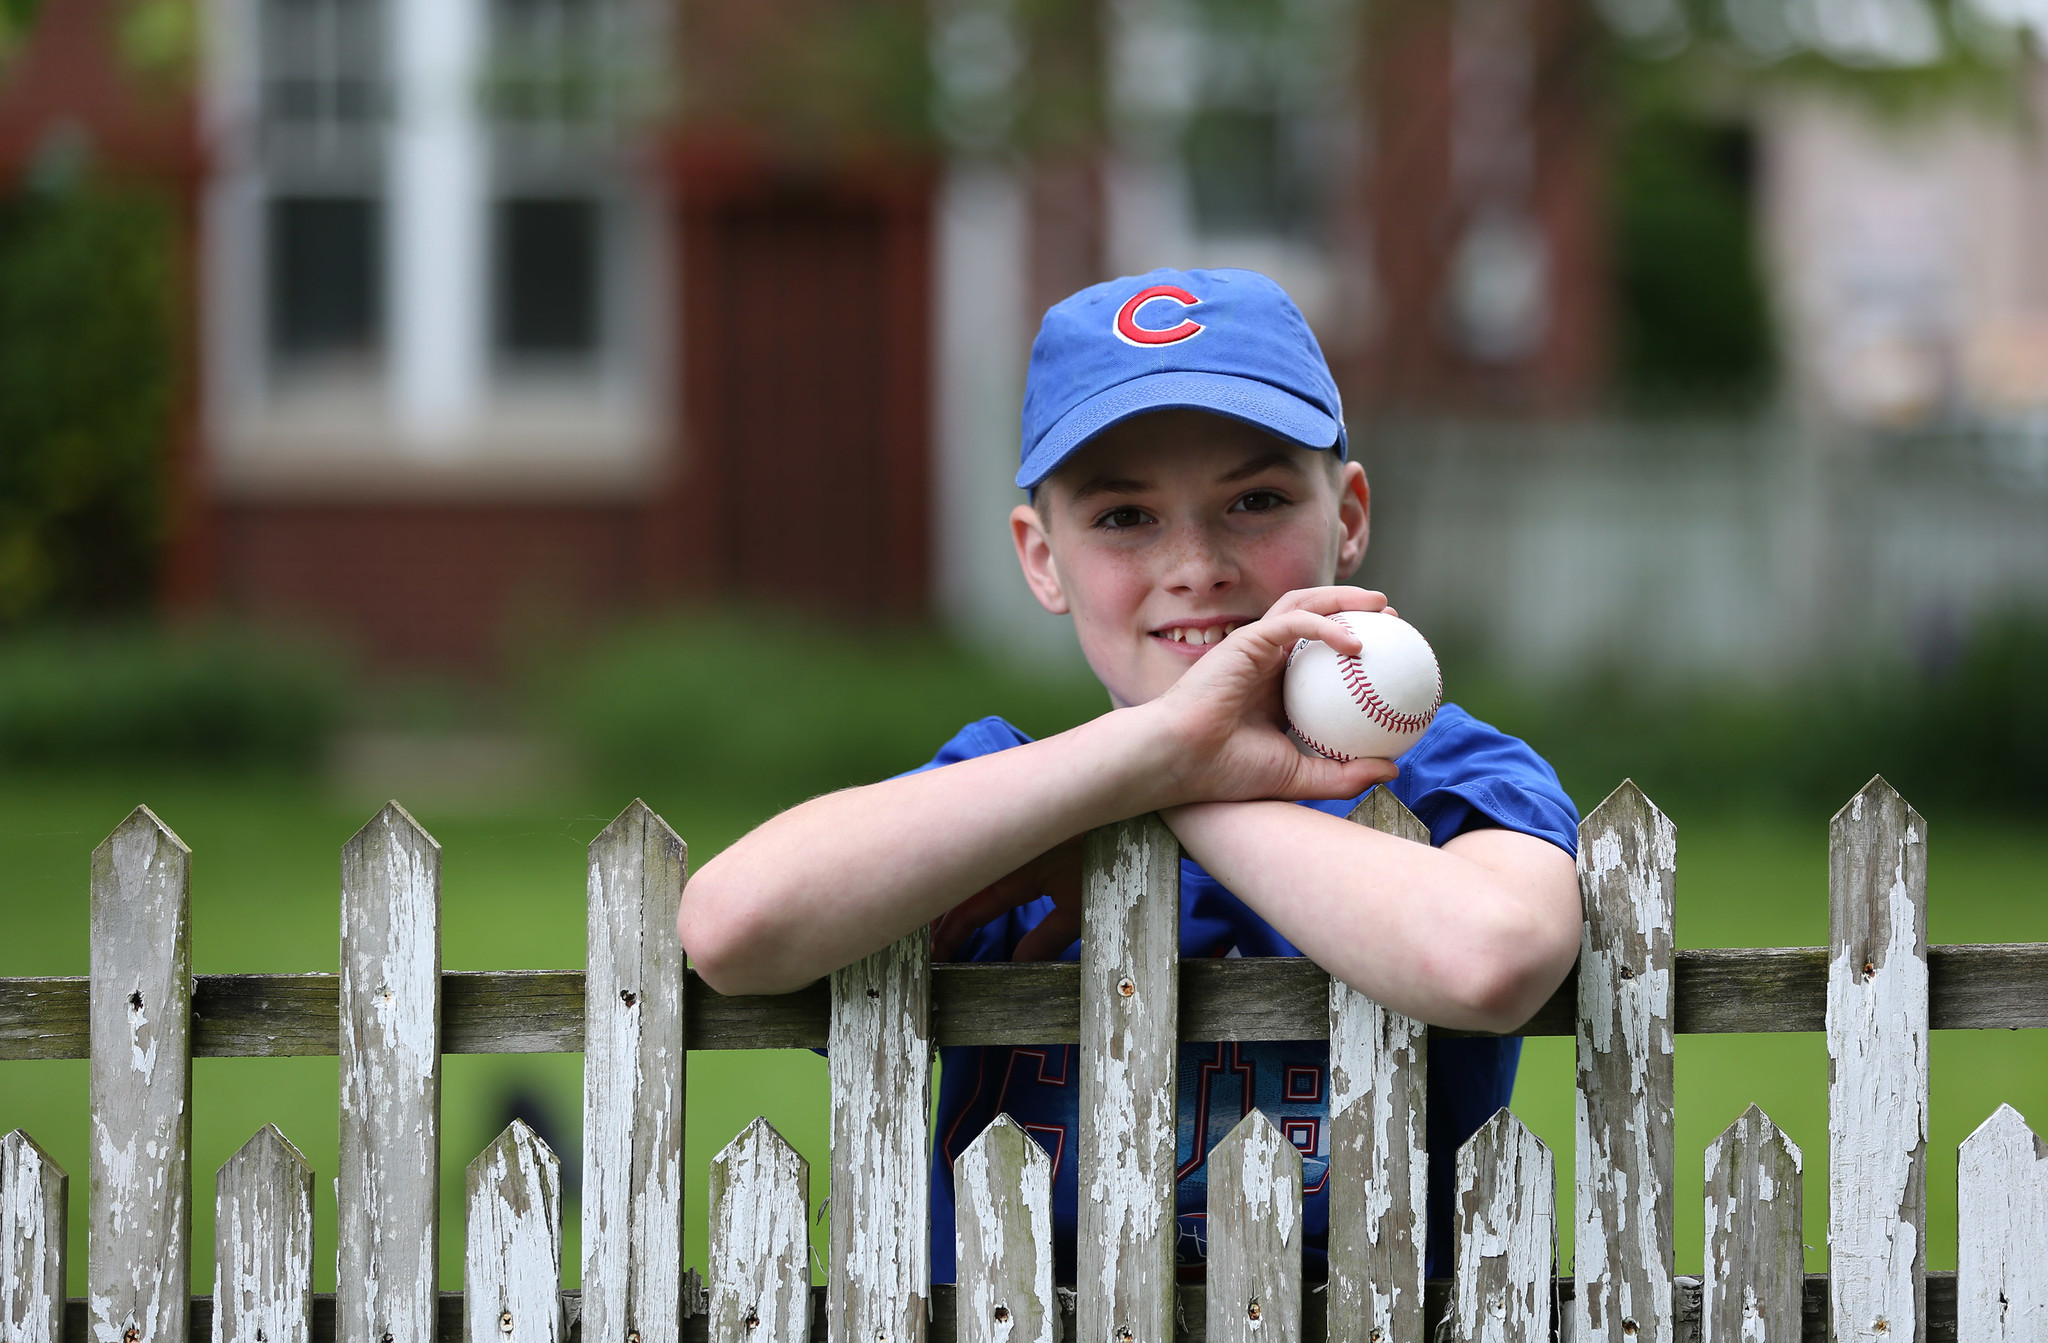 boy who played catch with willson contreras cherishes